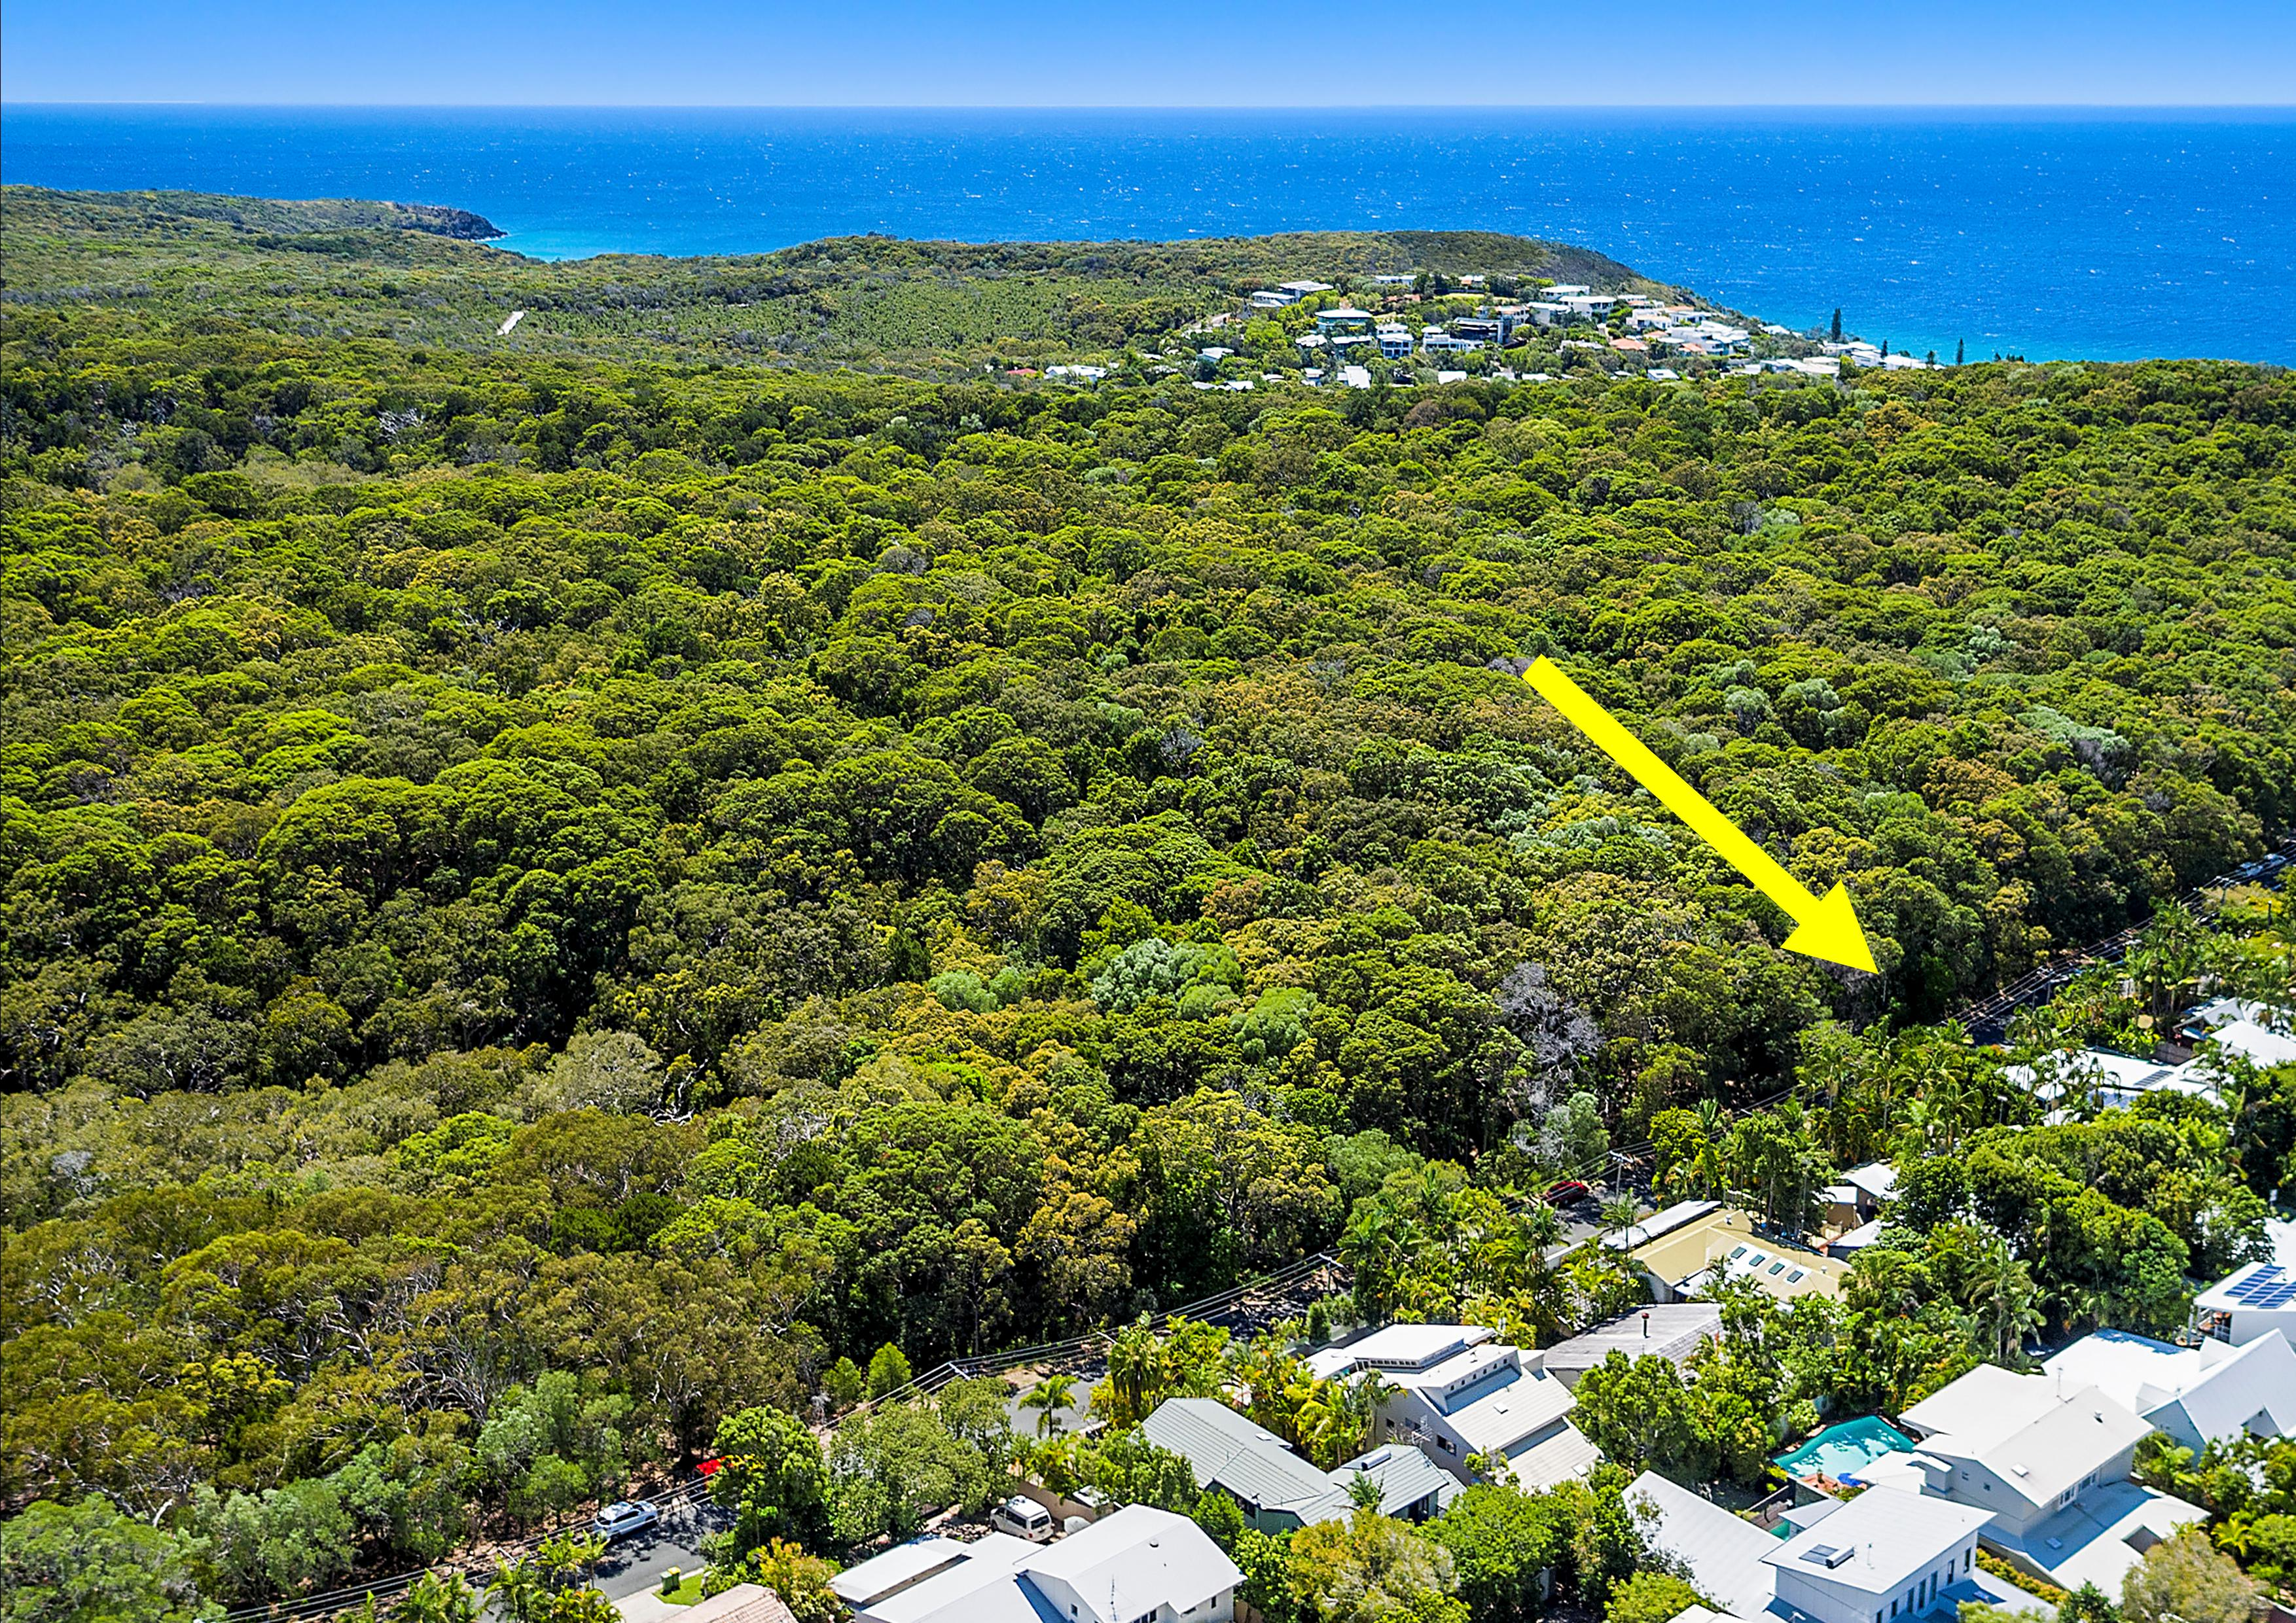 LIVING ON THE EDGE OF NOOSA NATIONAL PARK